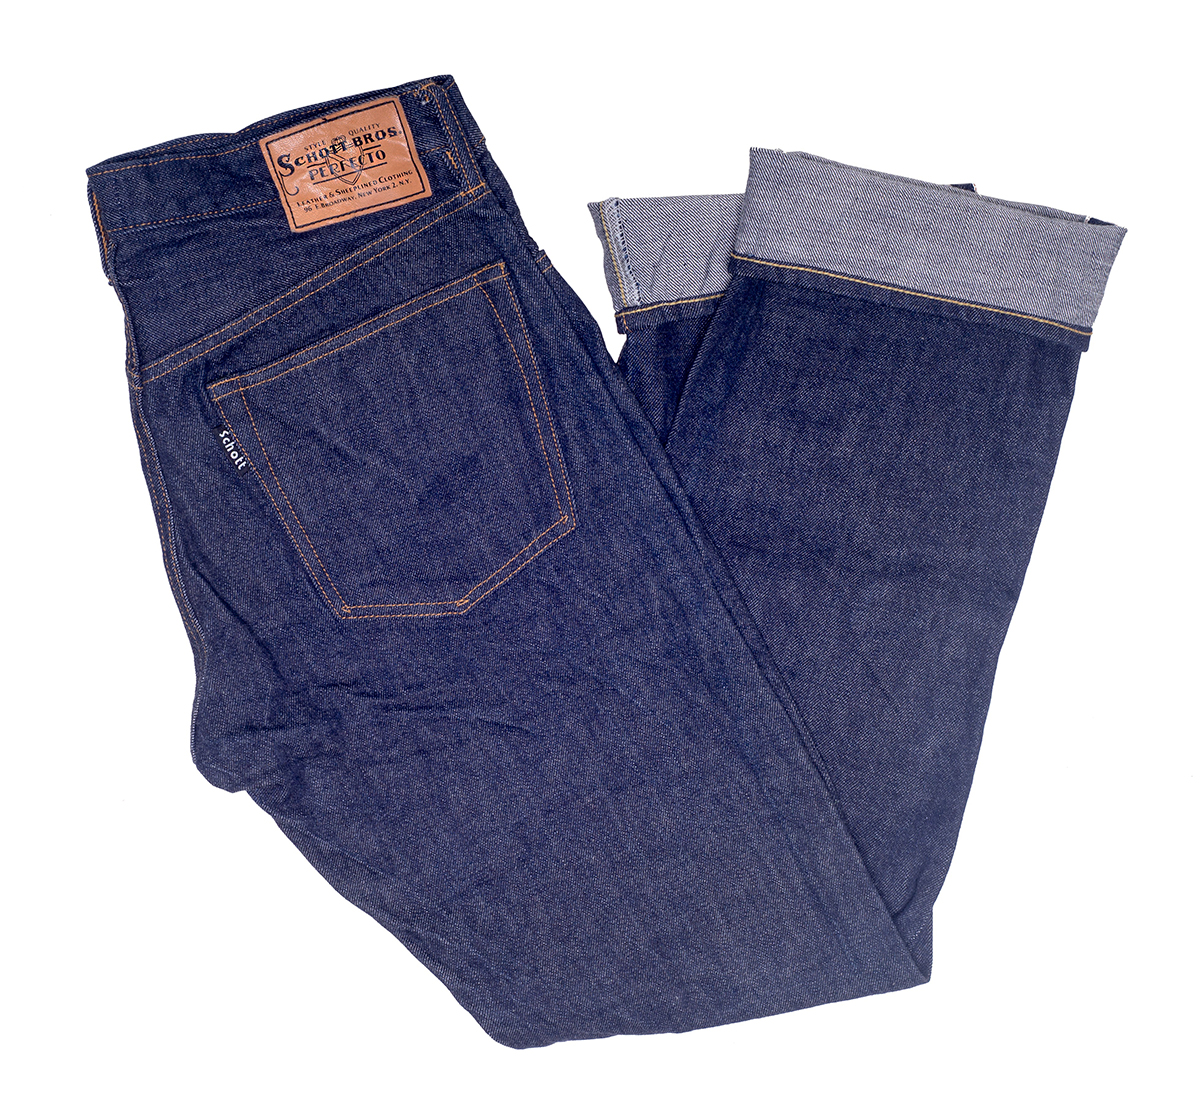 Schott N.Y.C. US6039 13 Oz. Japanese Selvedge Denim Jeans